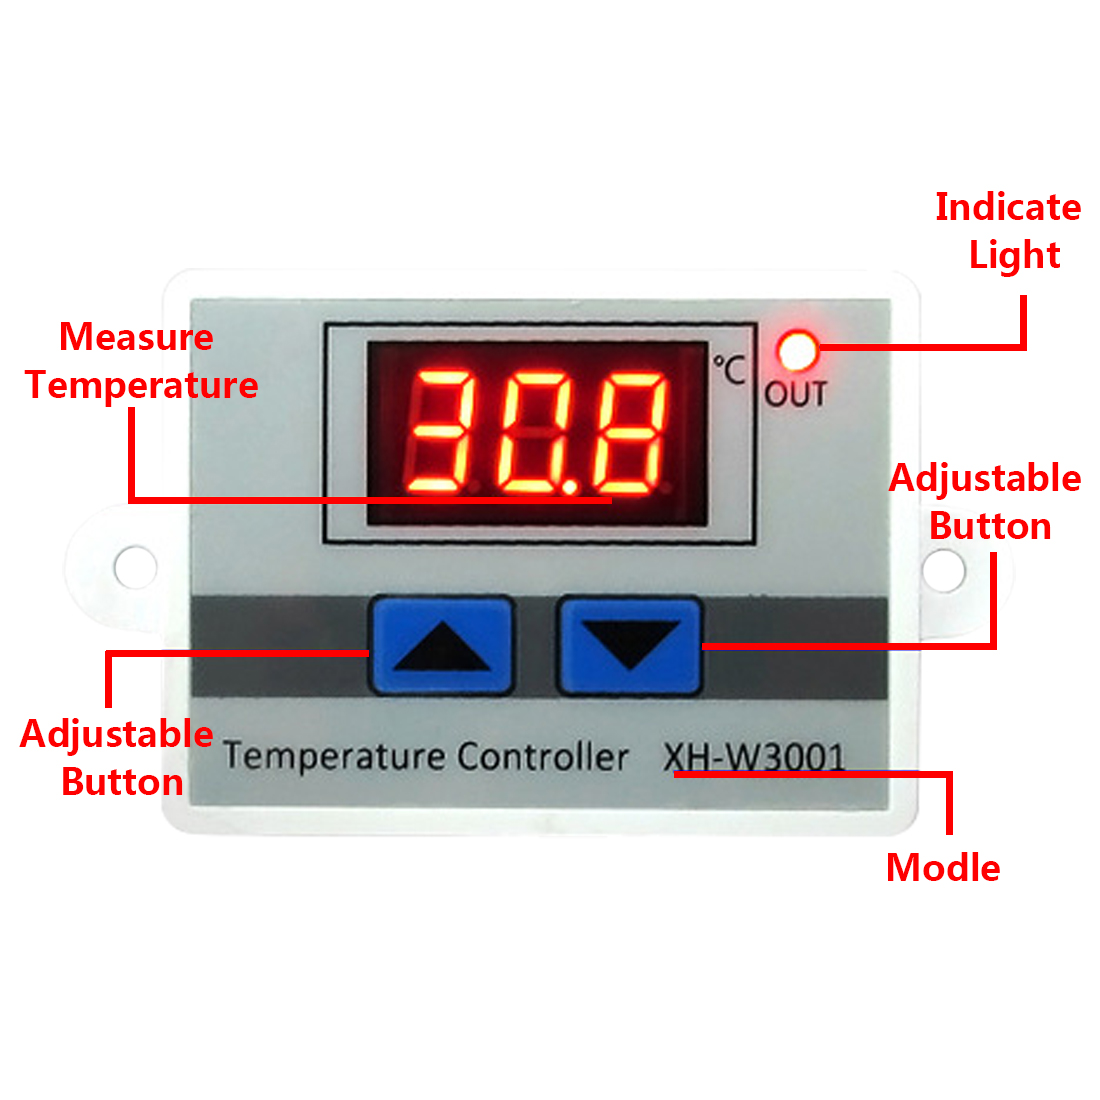 220v Xh W3001 Temperature Controller Digital Led Thermometer For Measurement Thermo Switch Probe In Instruments From Tools On